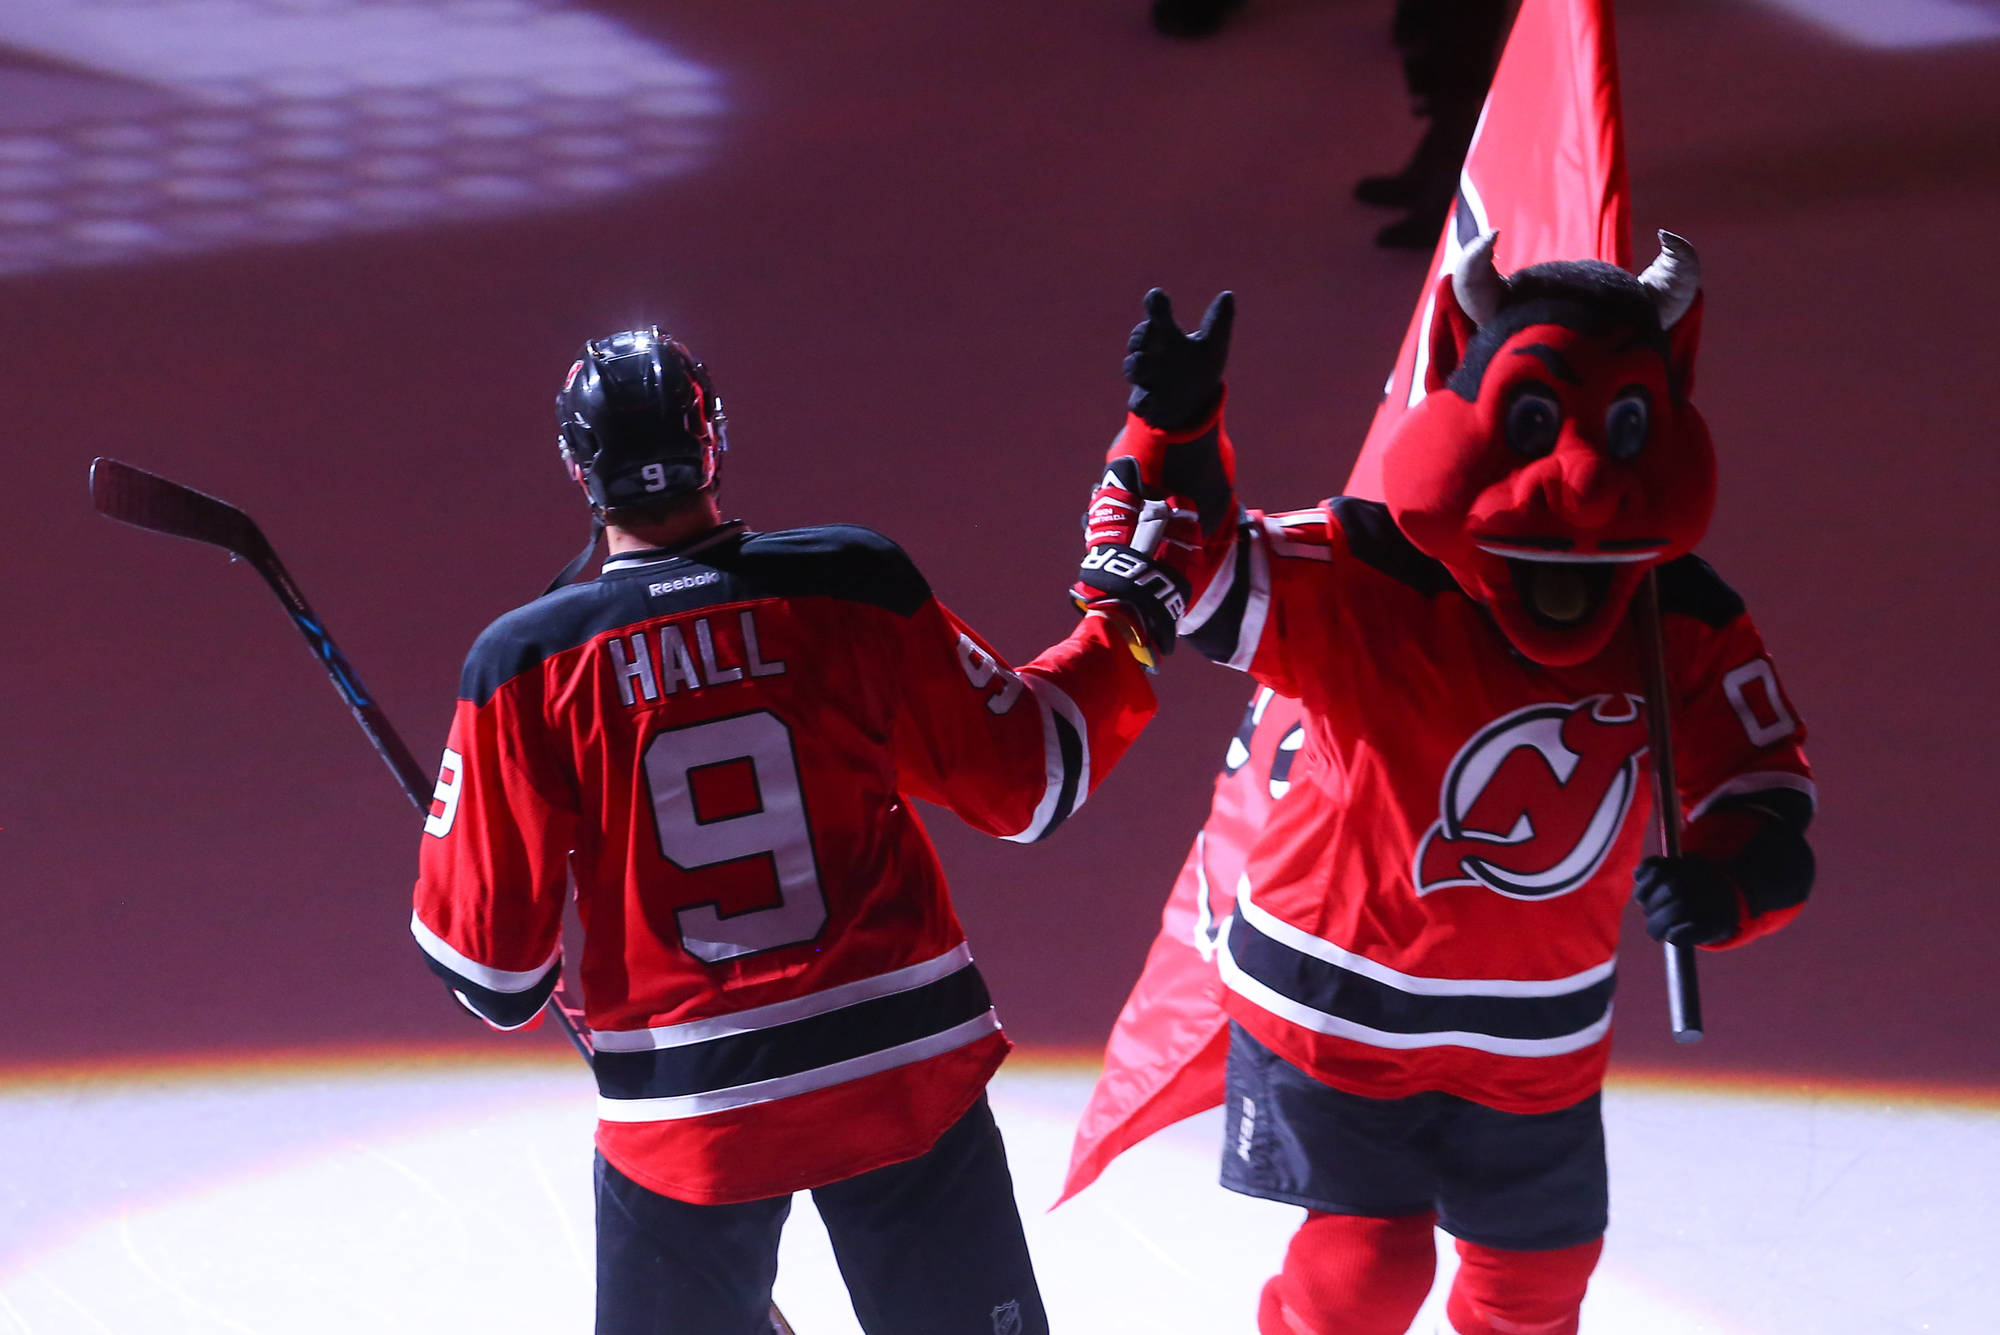 New Jersey Devils: Picking Up The Pace